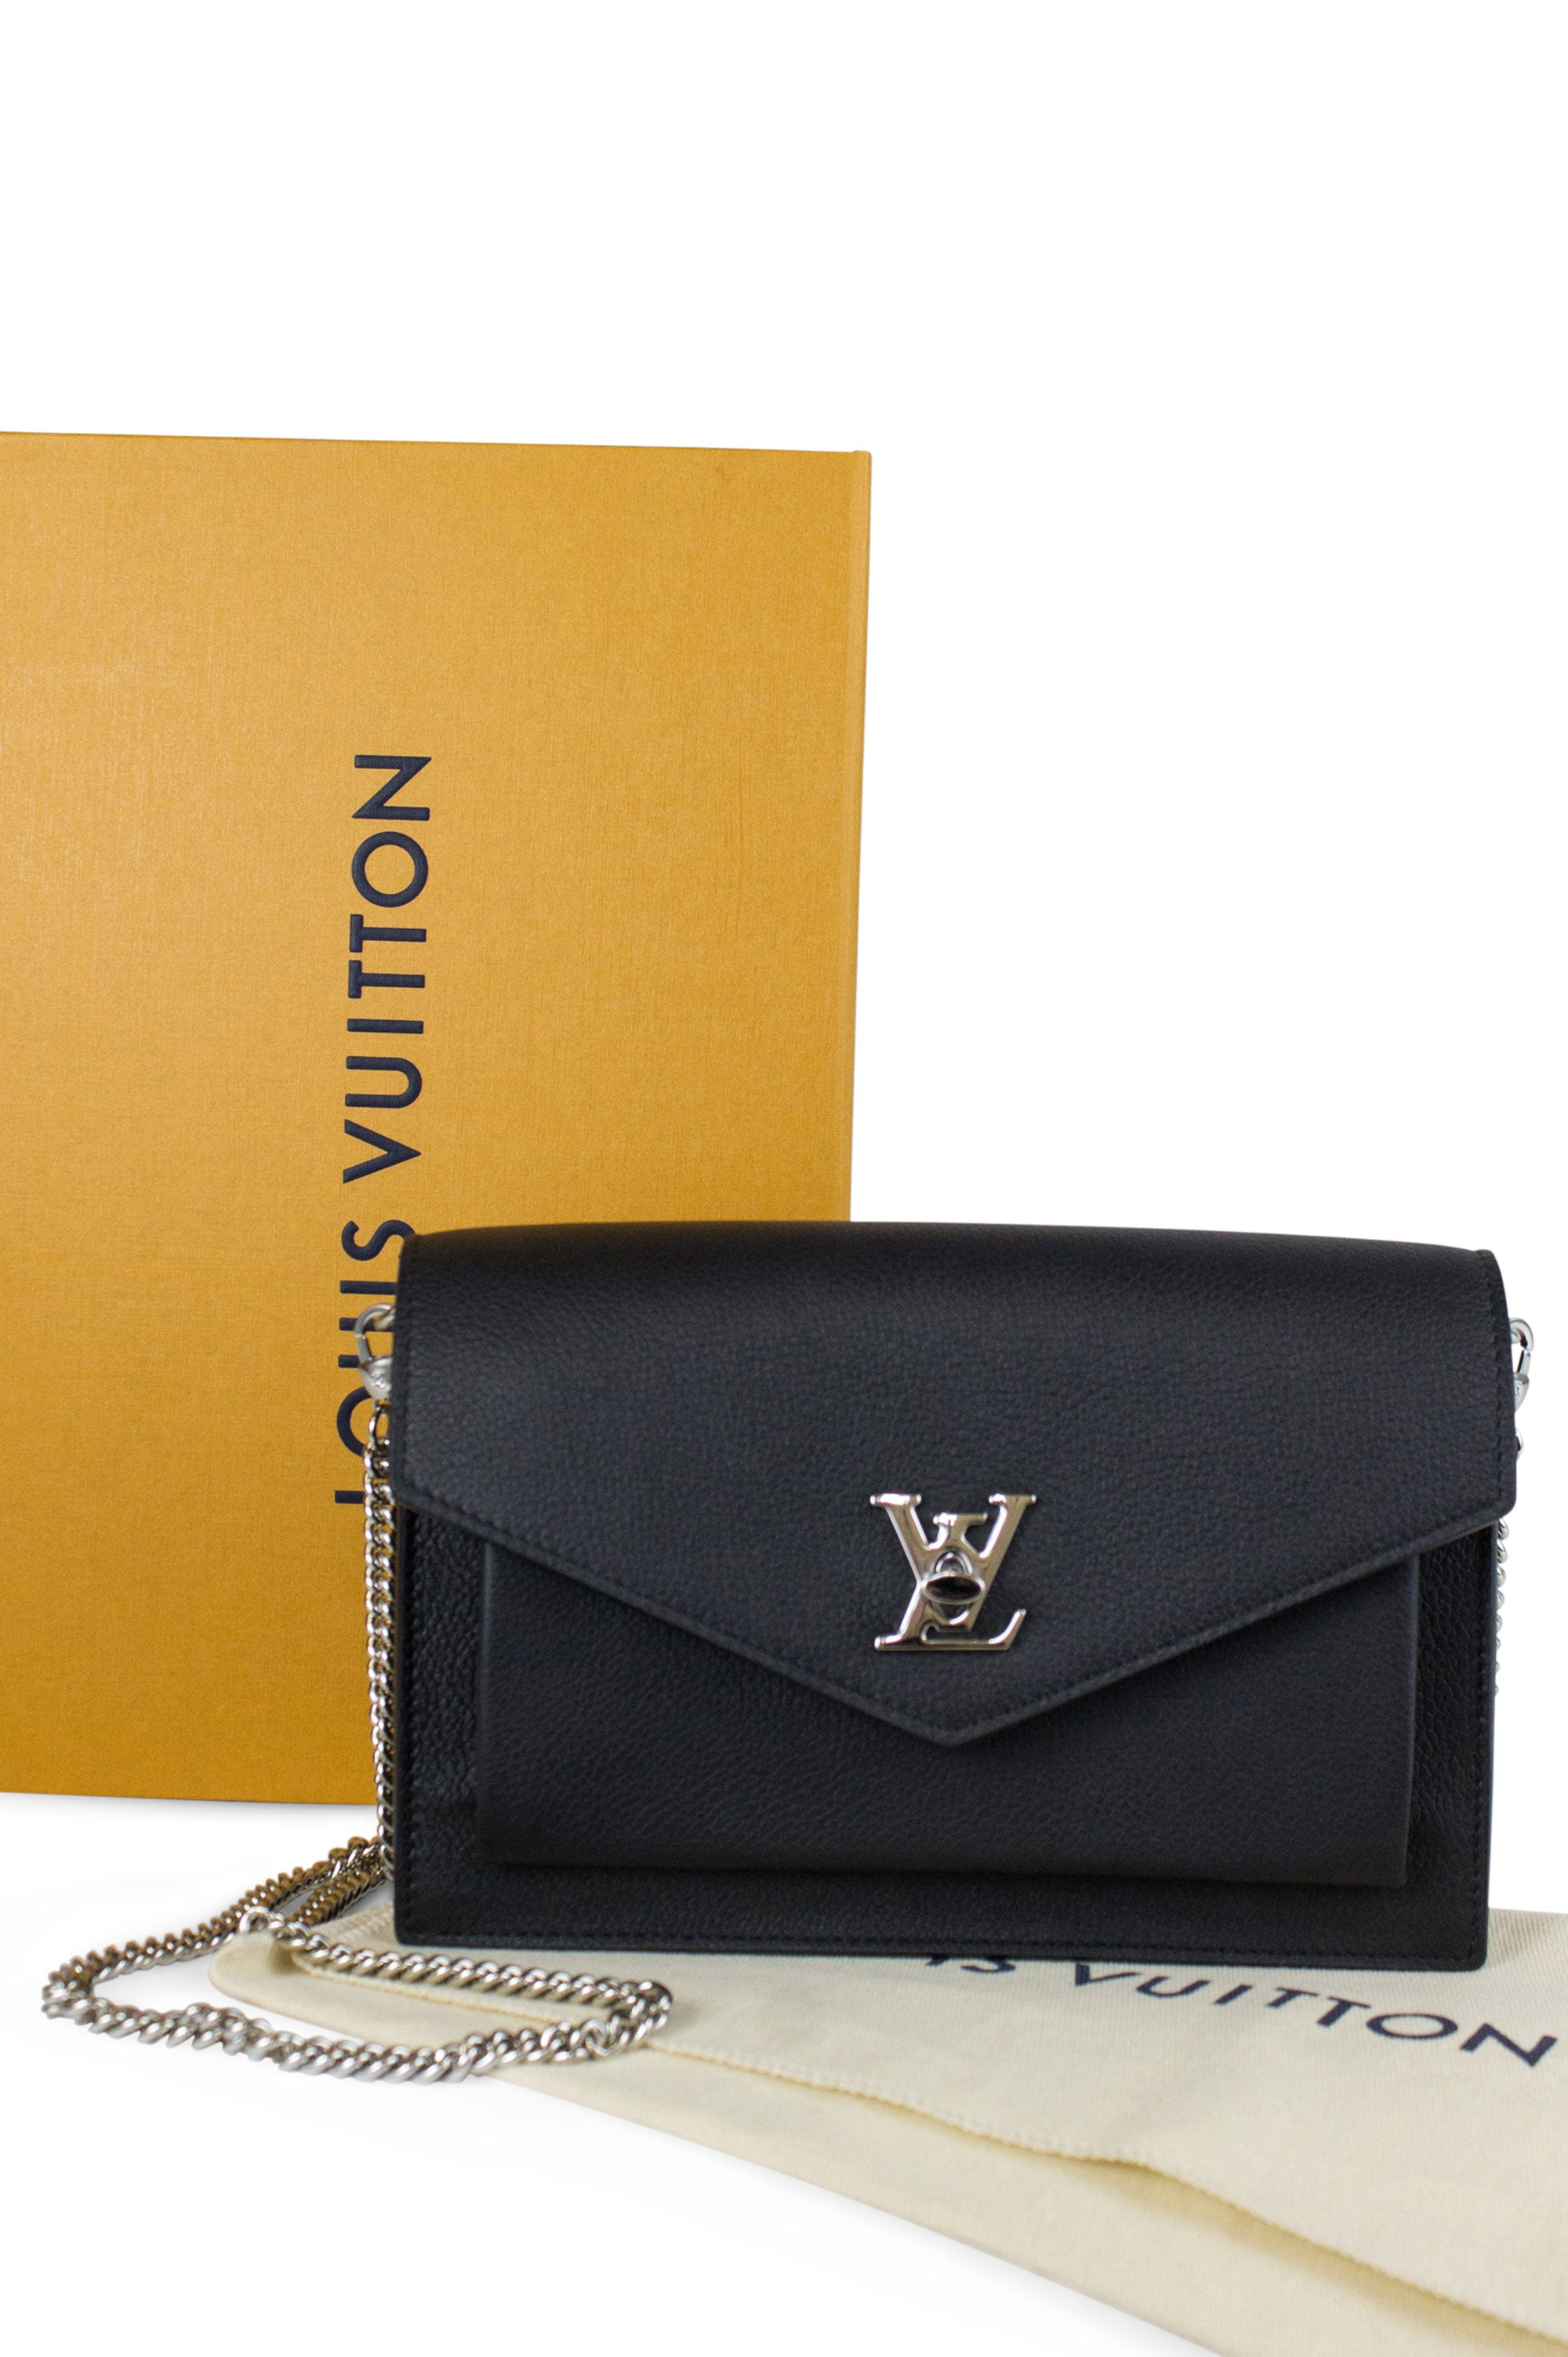 Louis Vuitton Mylookme Chain Pochette Frontansicht Box Dustbag Schwarz Silber Hardware